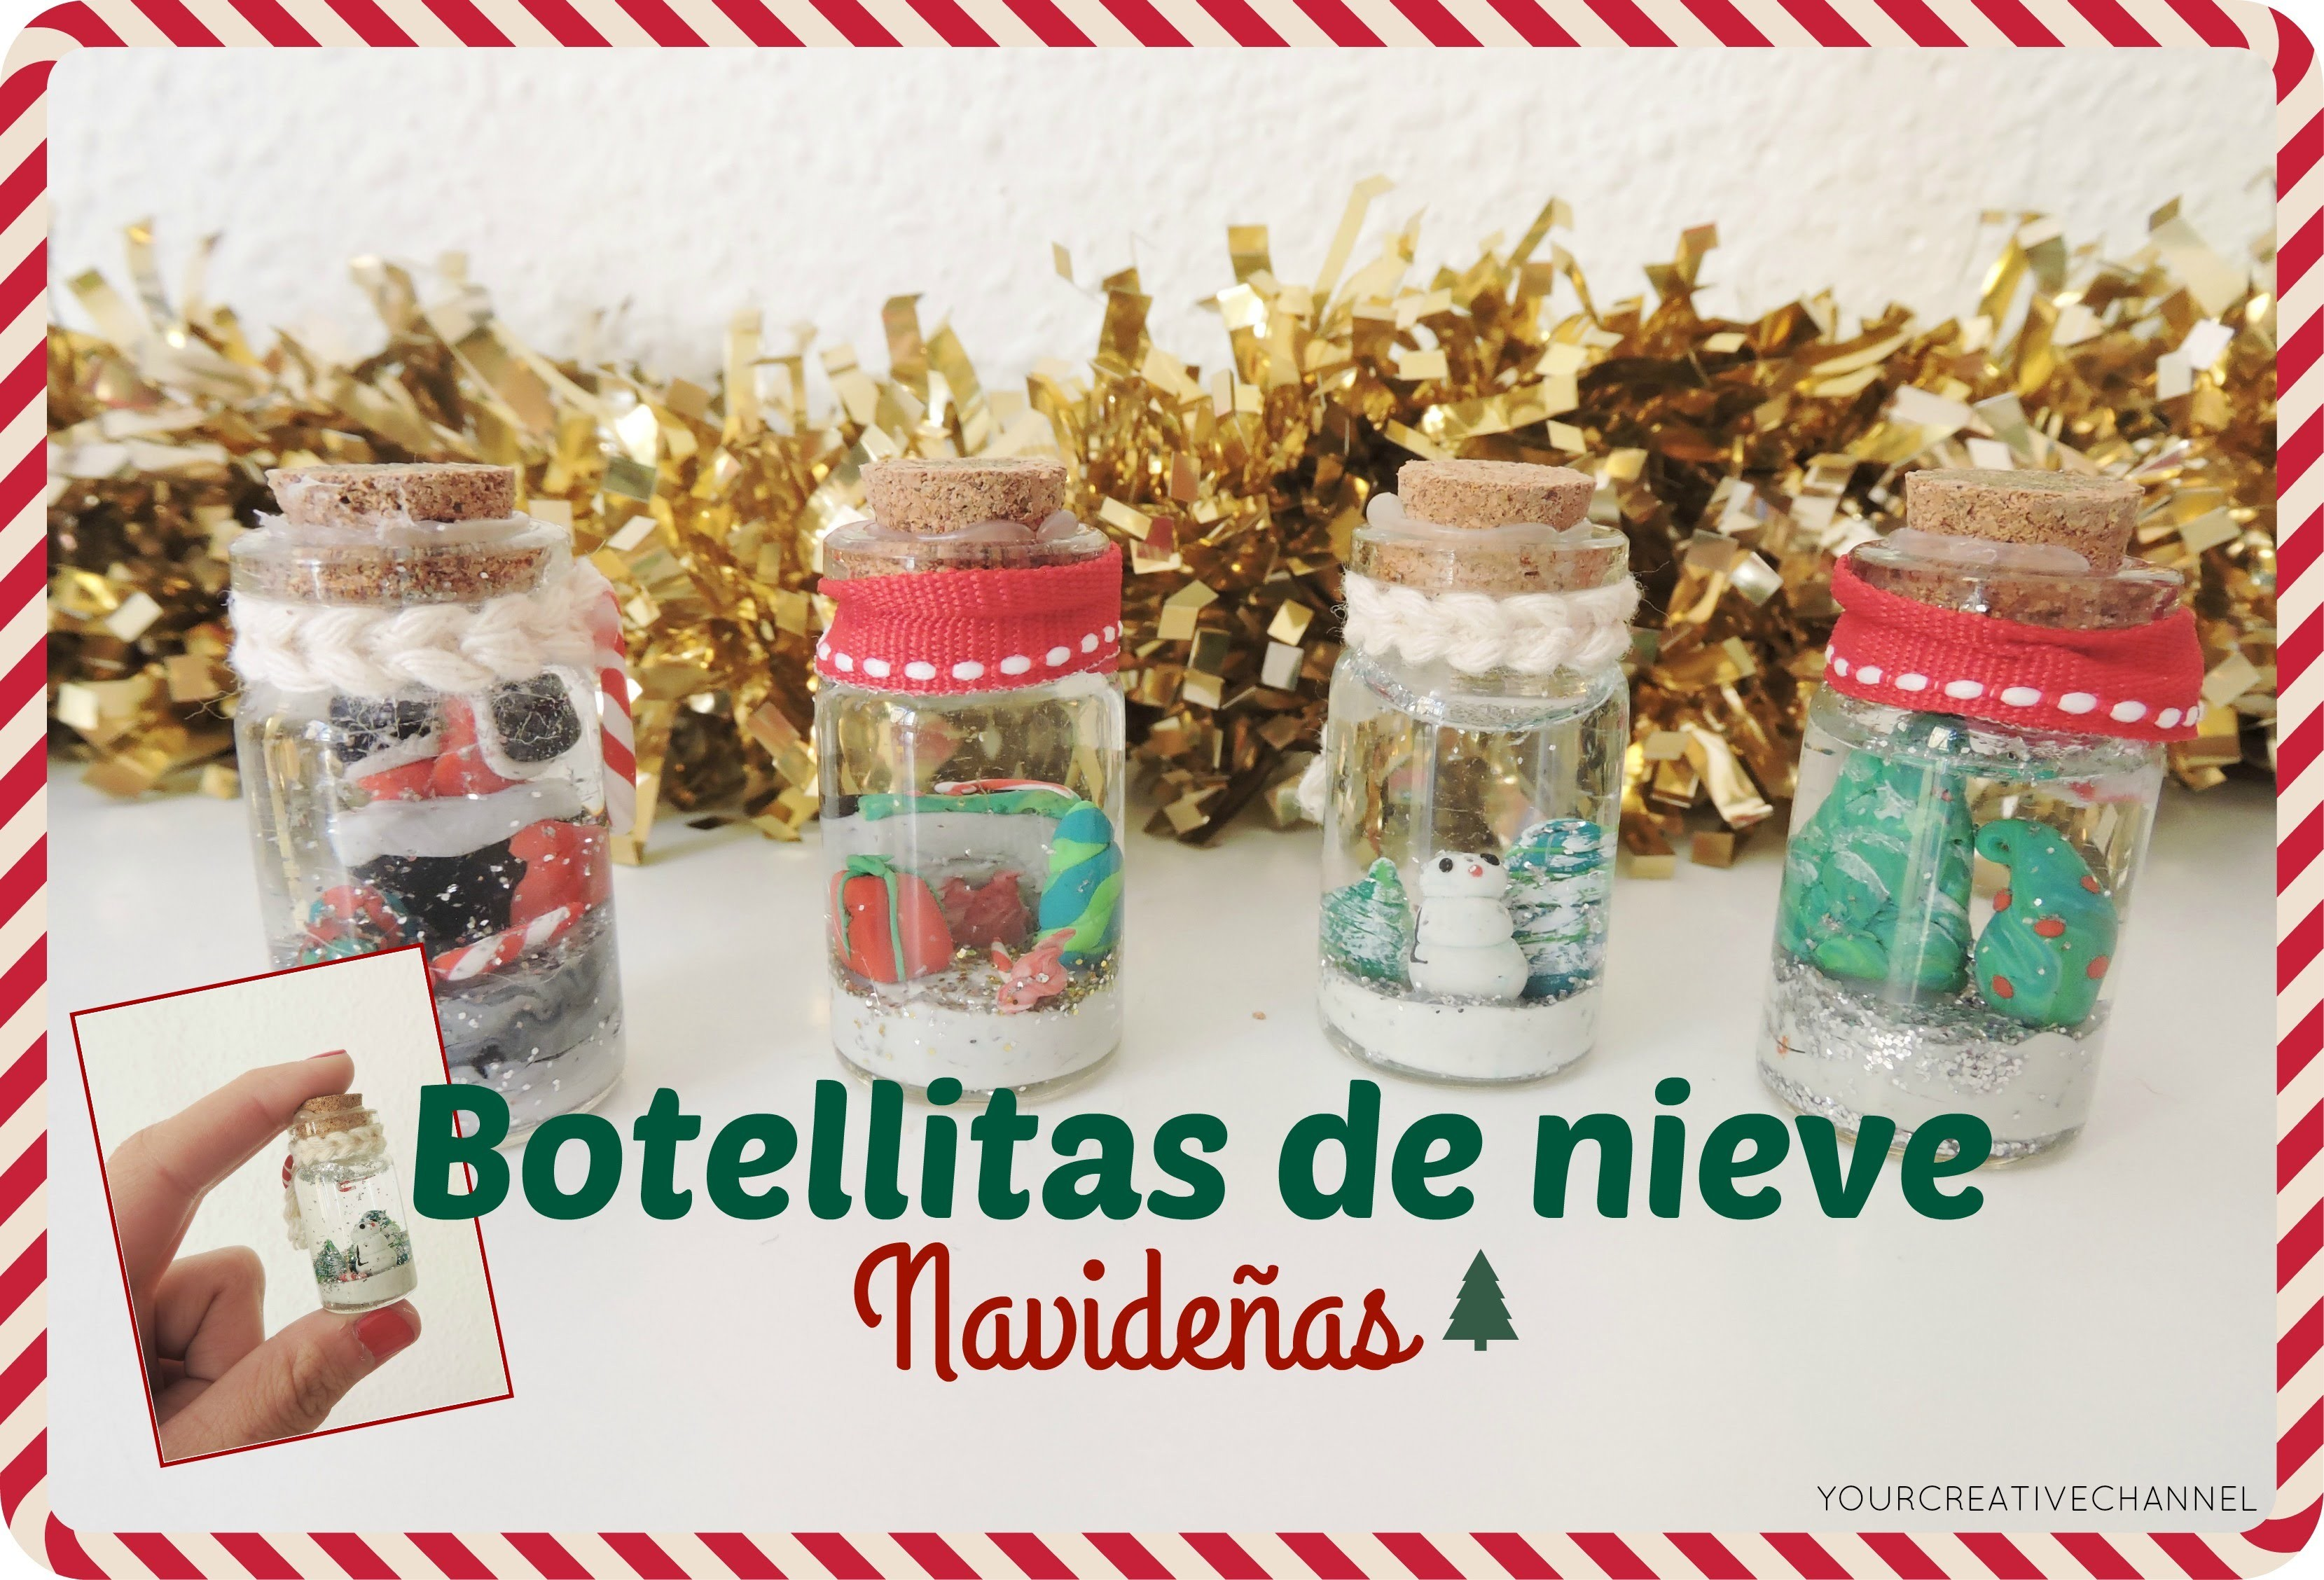 Como hacer bolas de nieve Navideñas - How to make Christmas snow balls